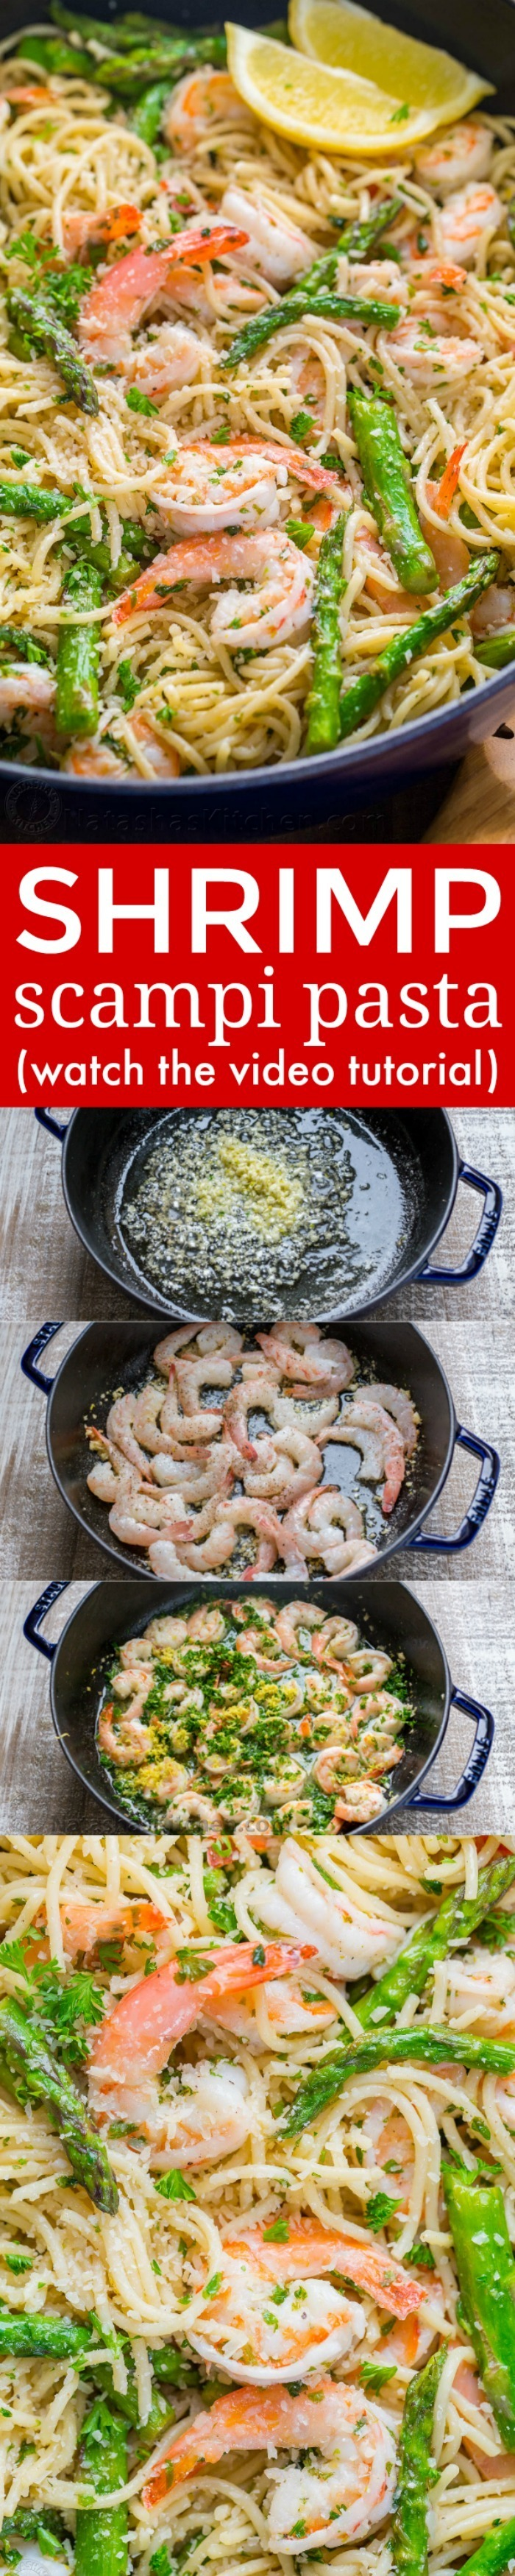 Shrimp Scampi Pasta with Asparagus (VIDEO Recipe)